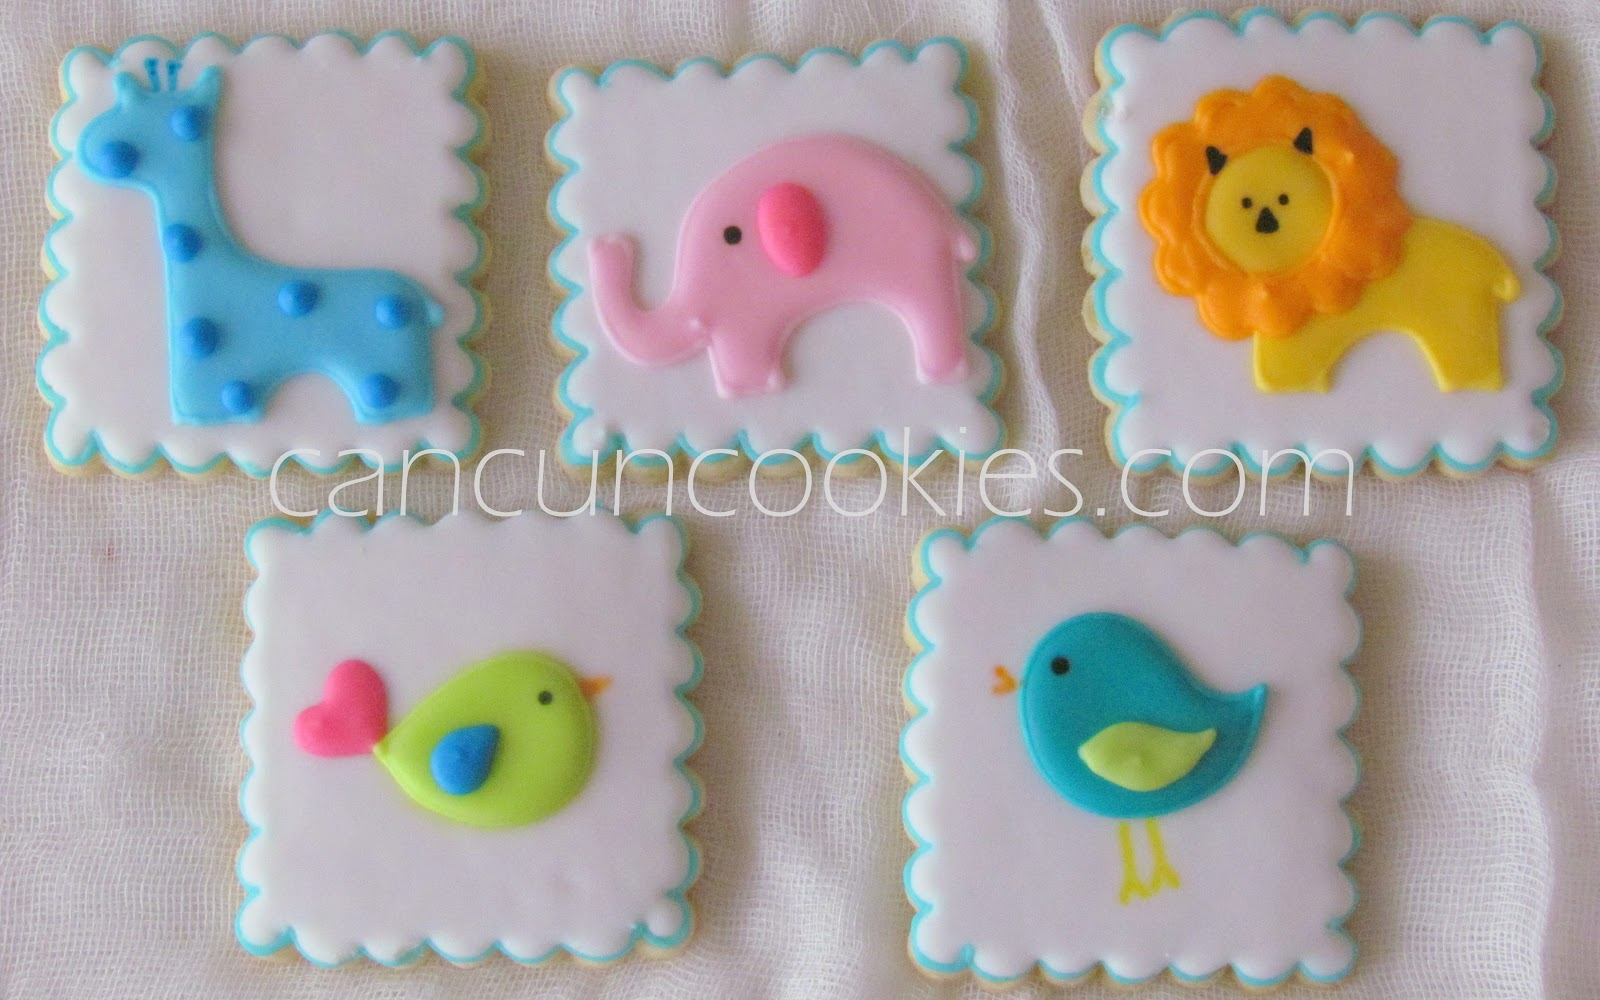 Galletas Decoradas Baby Shower Cancuncookies Galletas Decoradas